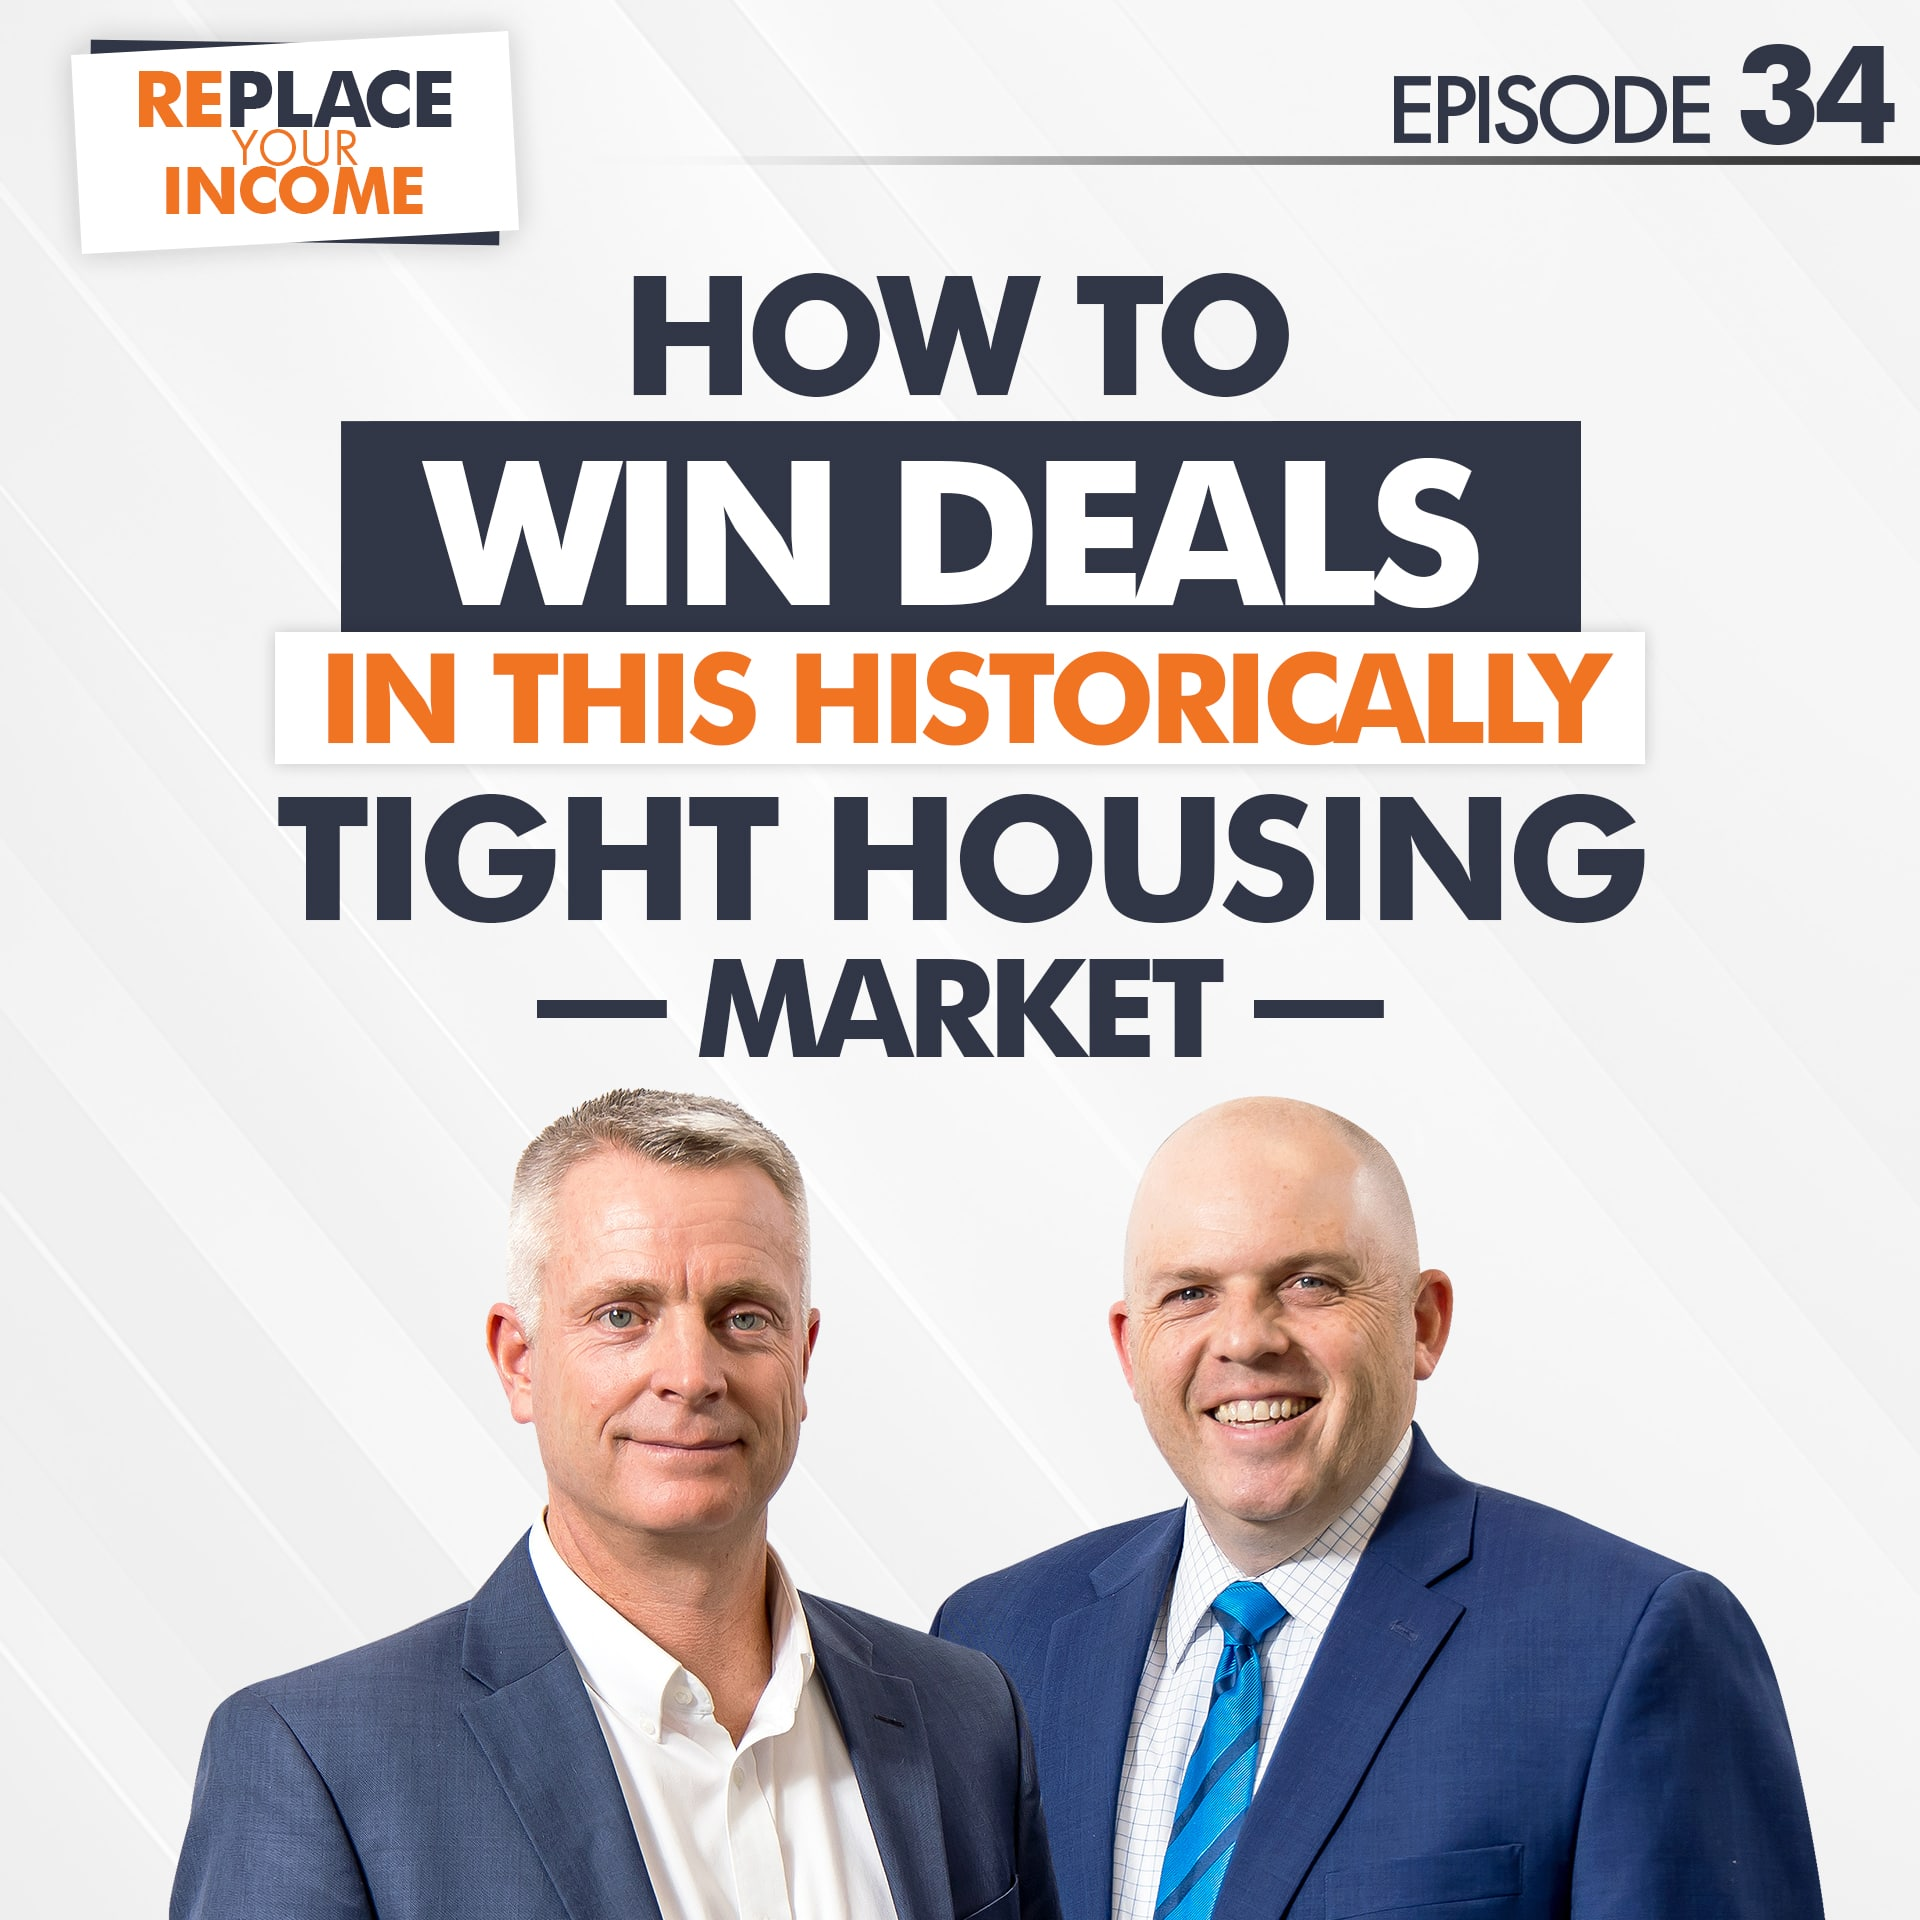 How To Win Deals In This Historically Tight Housing Market, Episode 34 of the Replace Your Income Podcast